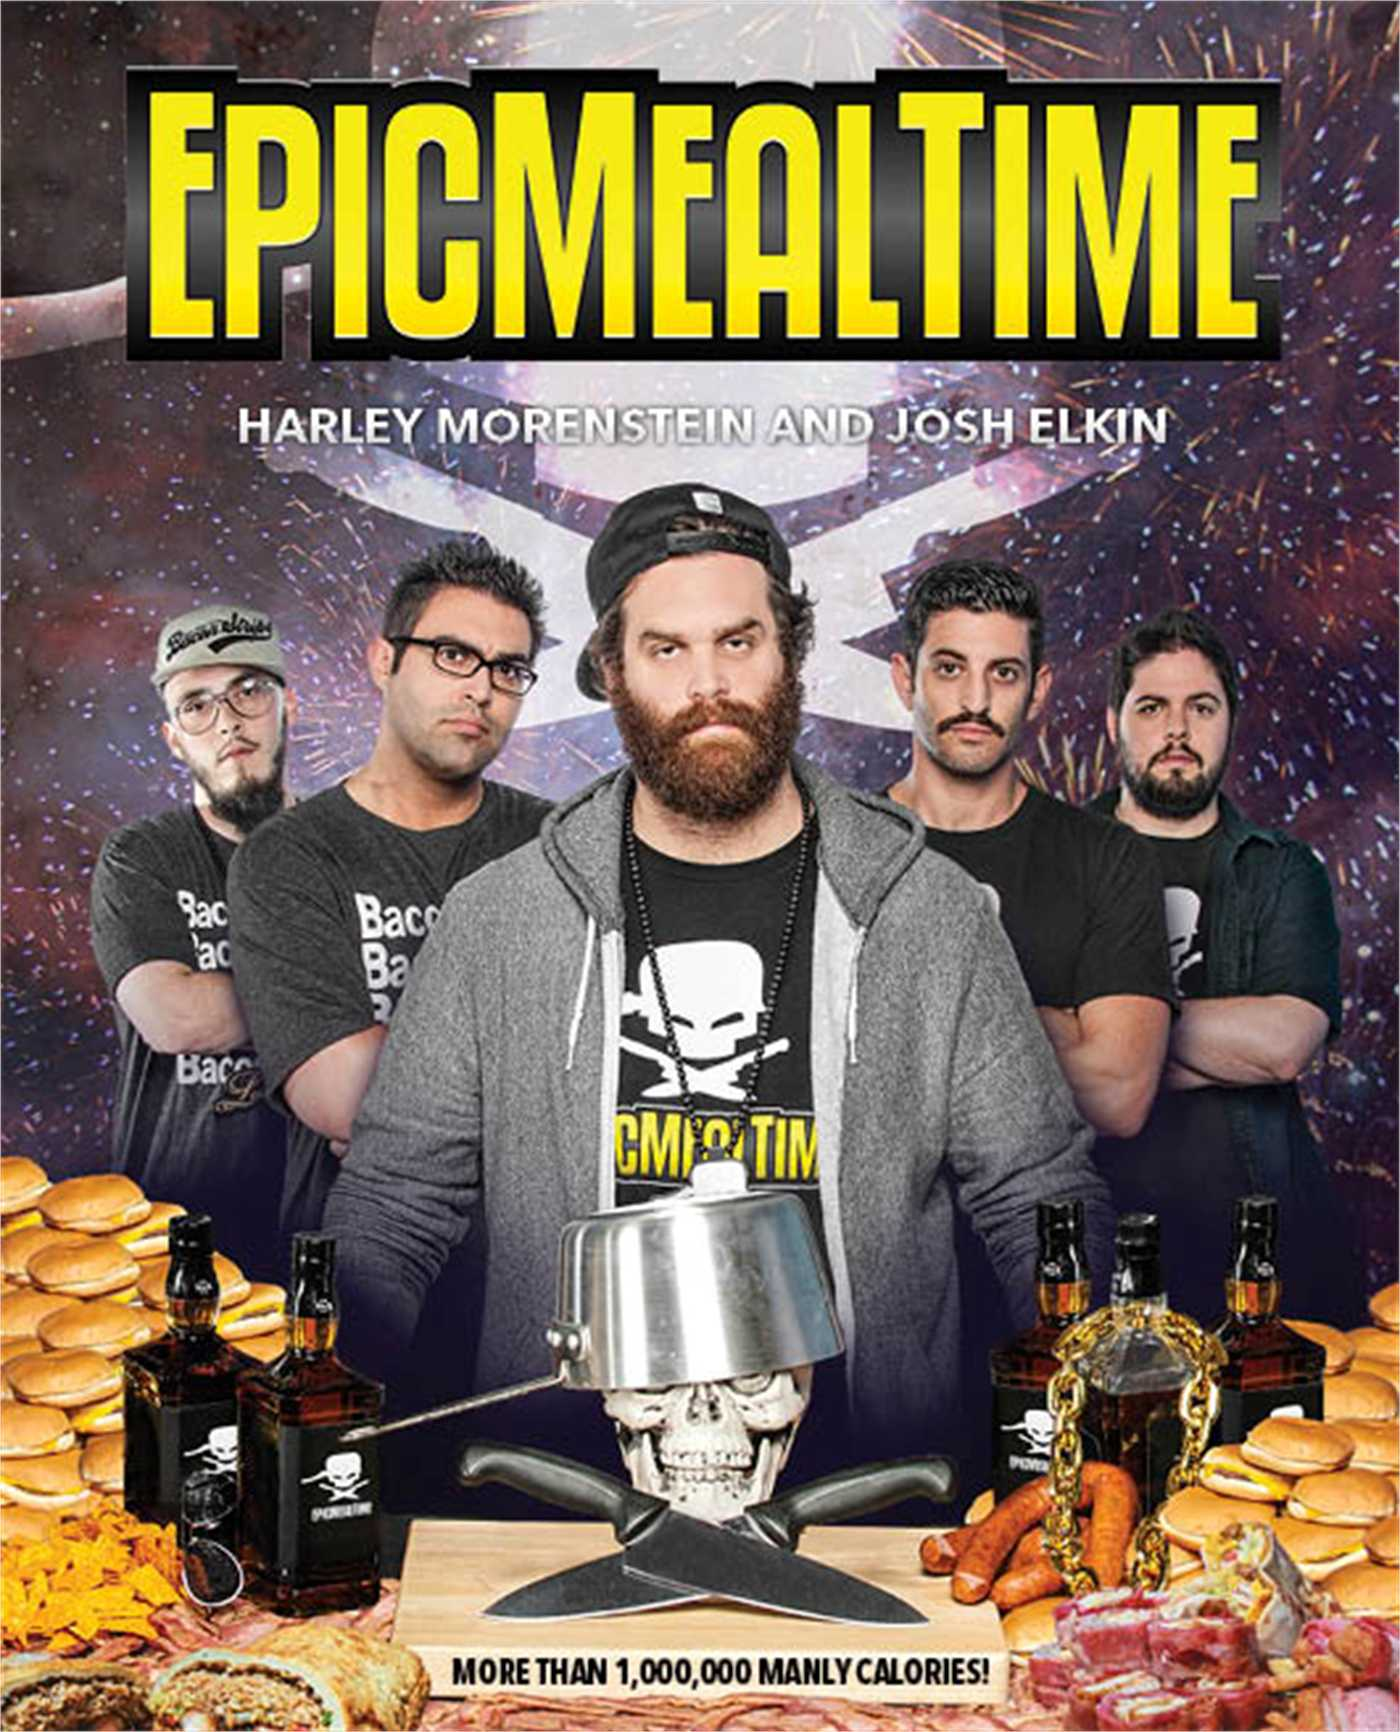 Epic-meal-time-9781476746012_hr